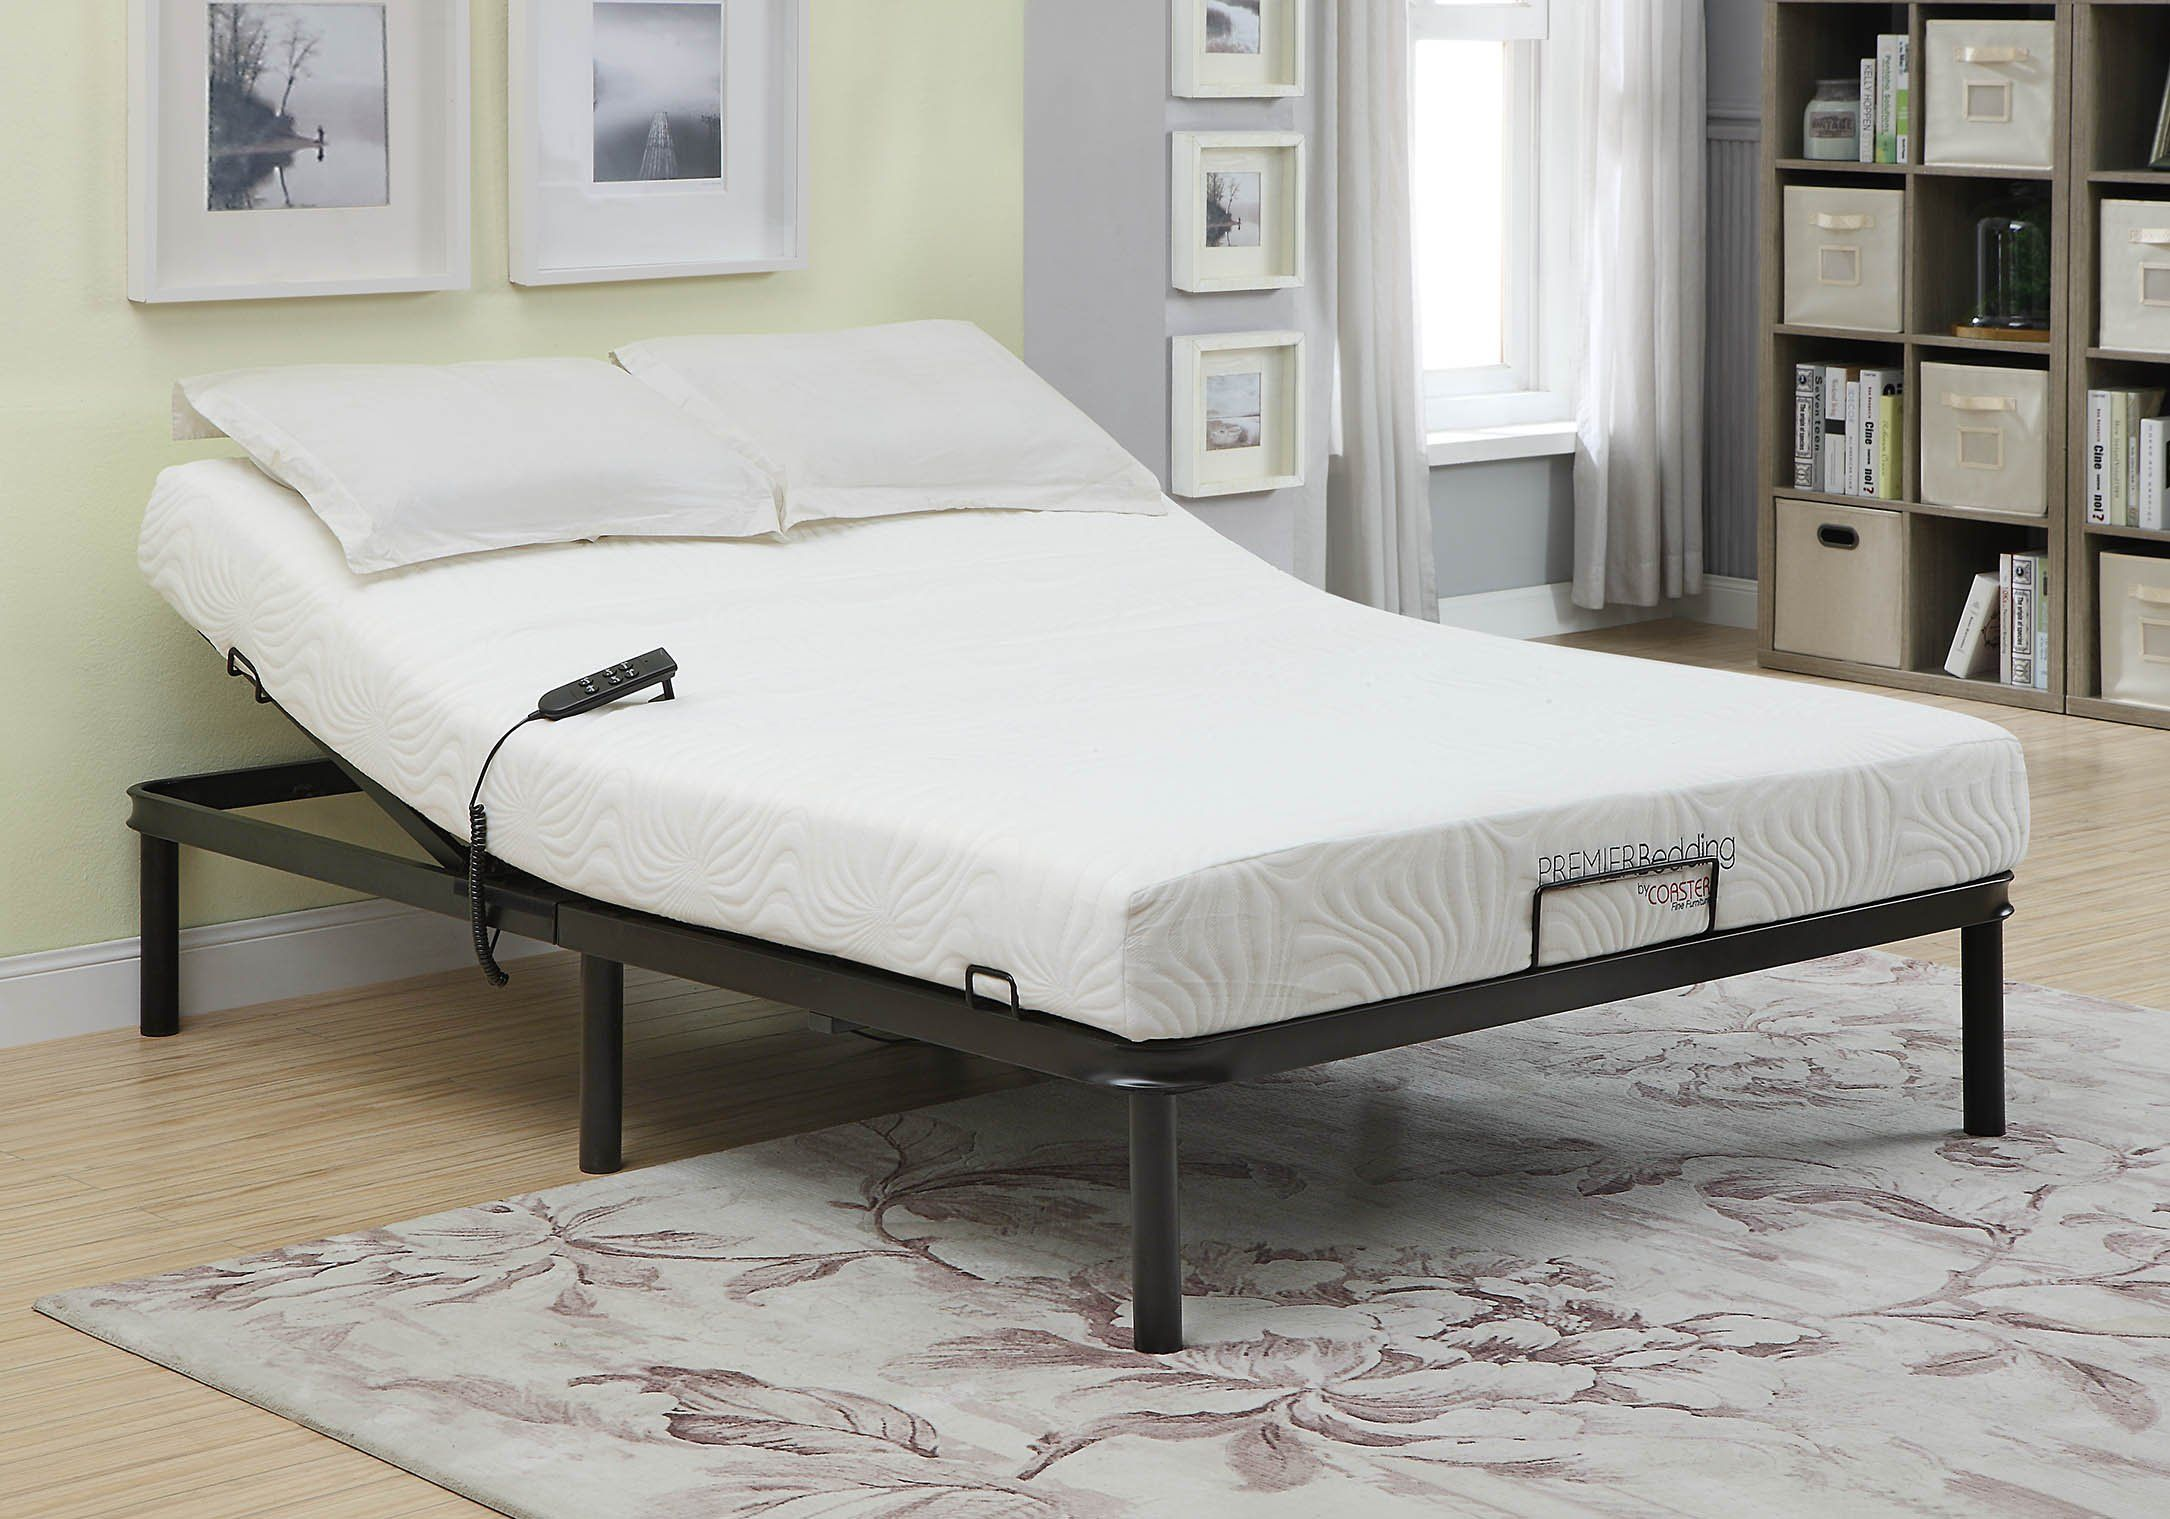 Adjustable Beds Electric Stanhope Adjustable Base Full Adjustable Bed Adjustablebeds